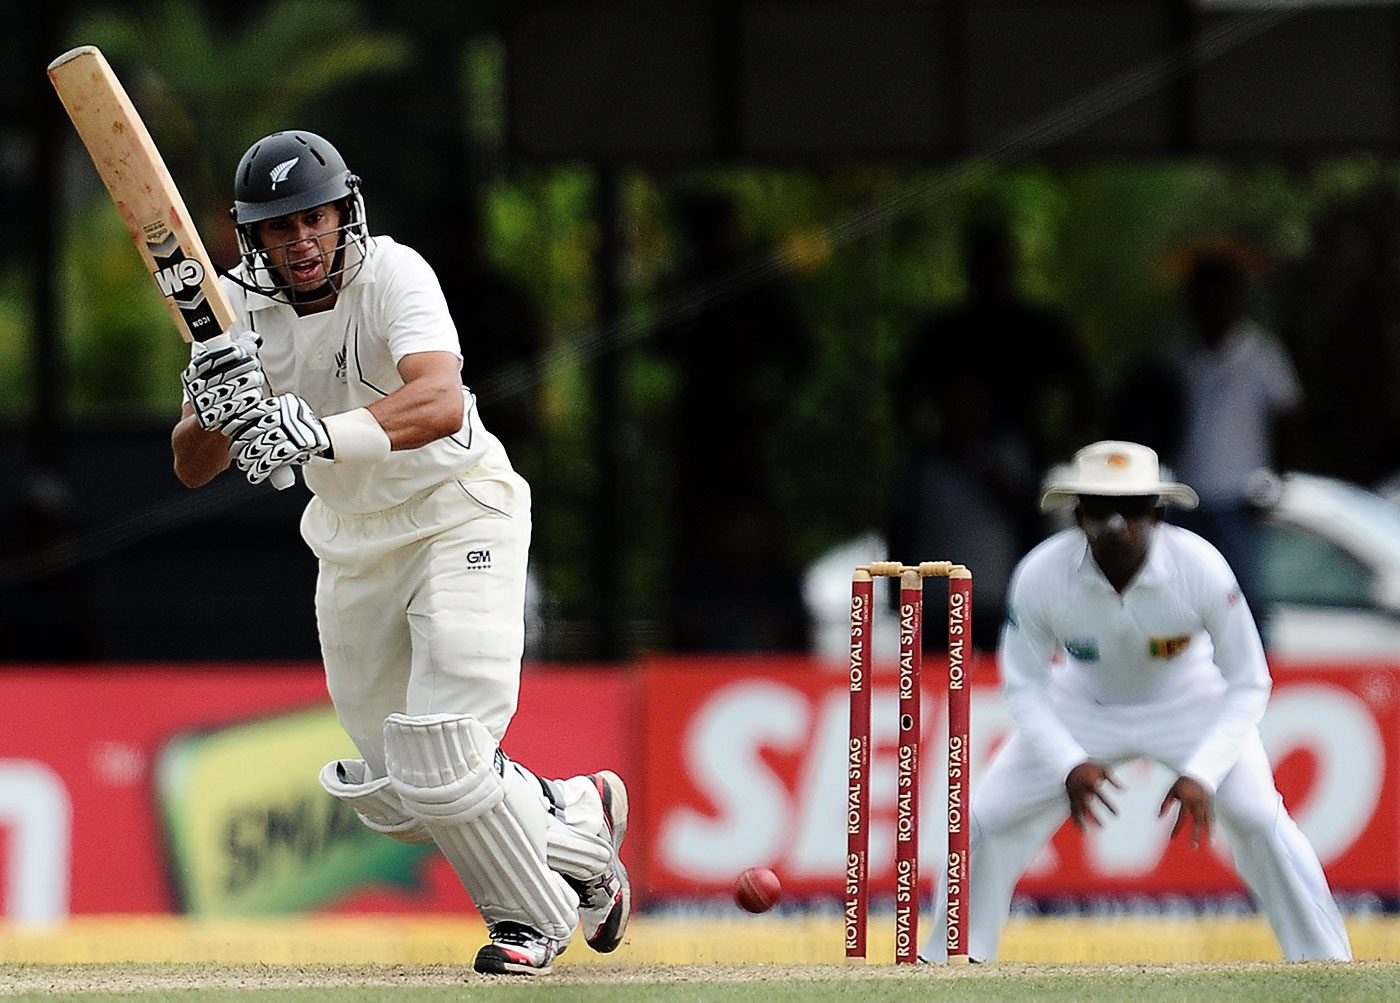 Taylor scored 142 in a famous Test win in Cololmbo shortly after learning that he was being removed from captaincy